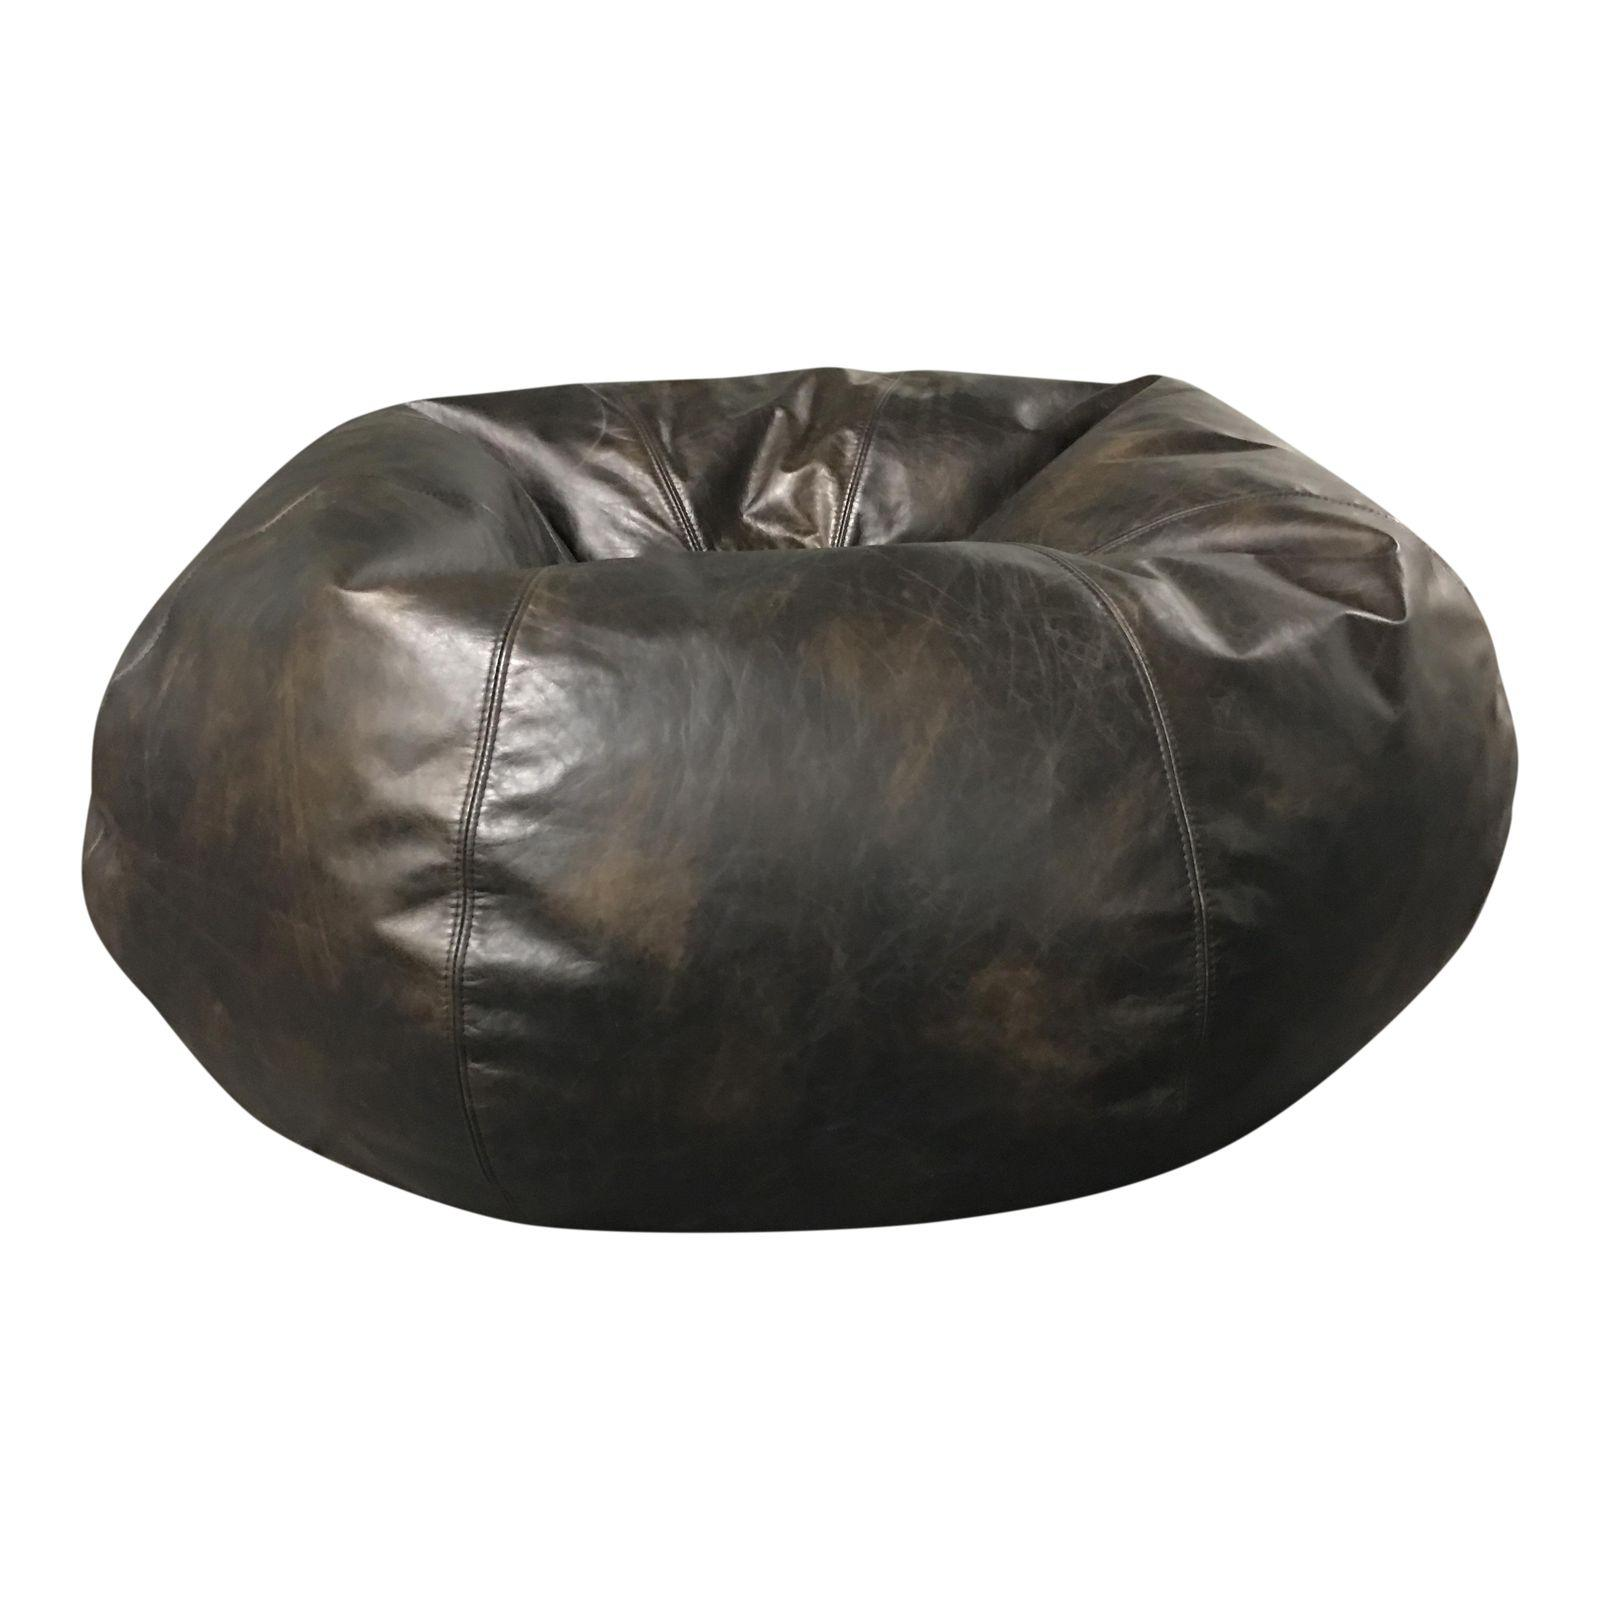 Restoration Hardware Grand Leather Bean Bag Chair 7581 1